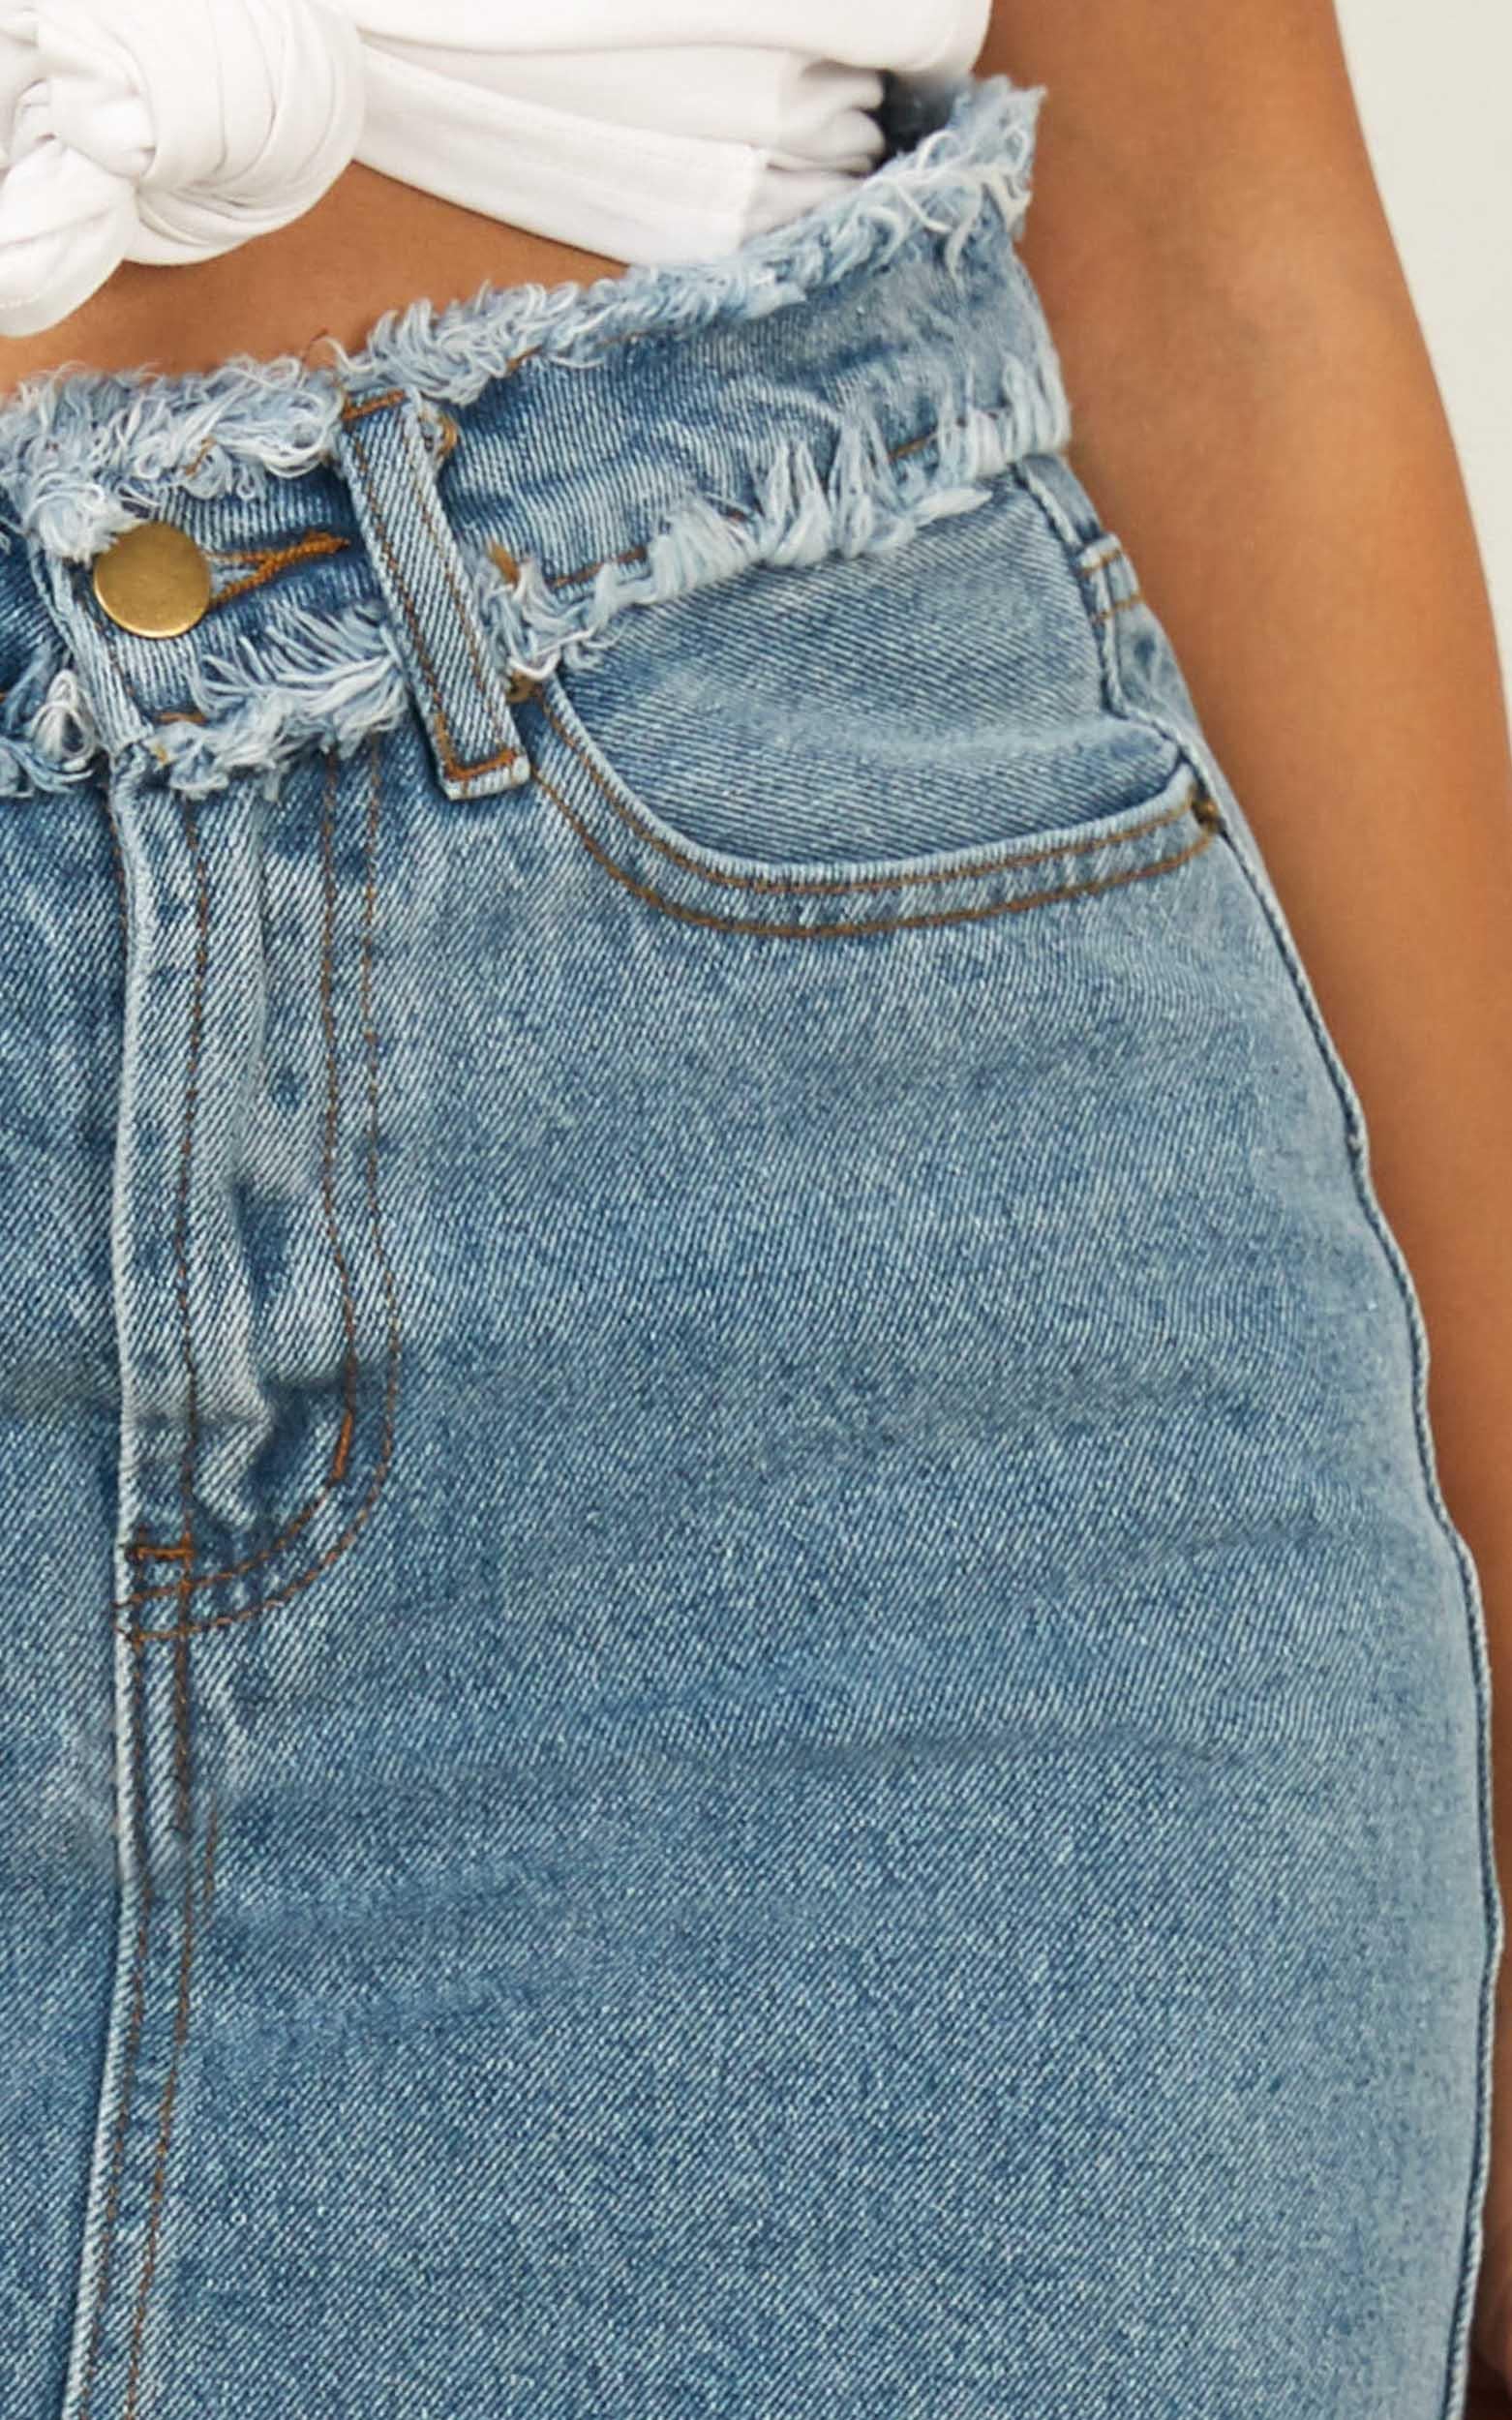 No Stopping Us denim skirt in mid wash - 14 (XL), Blue, hi-res image number null